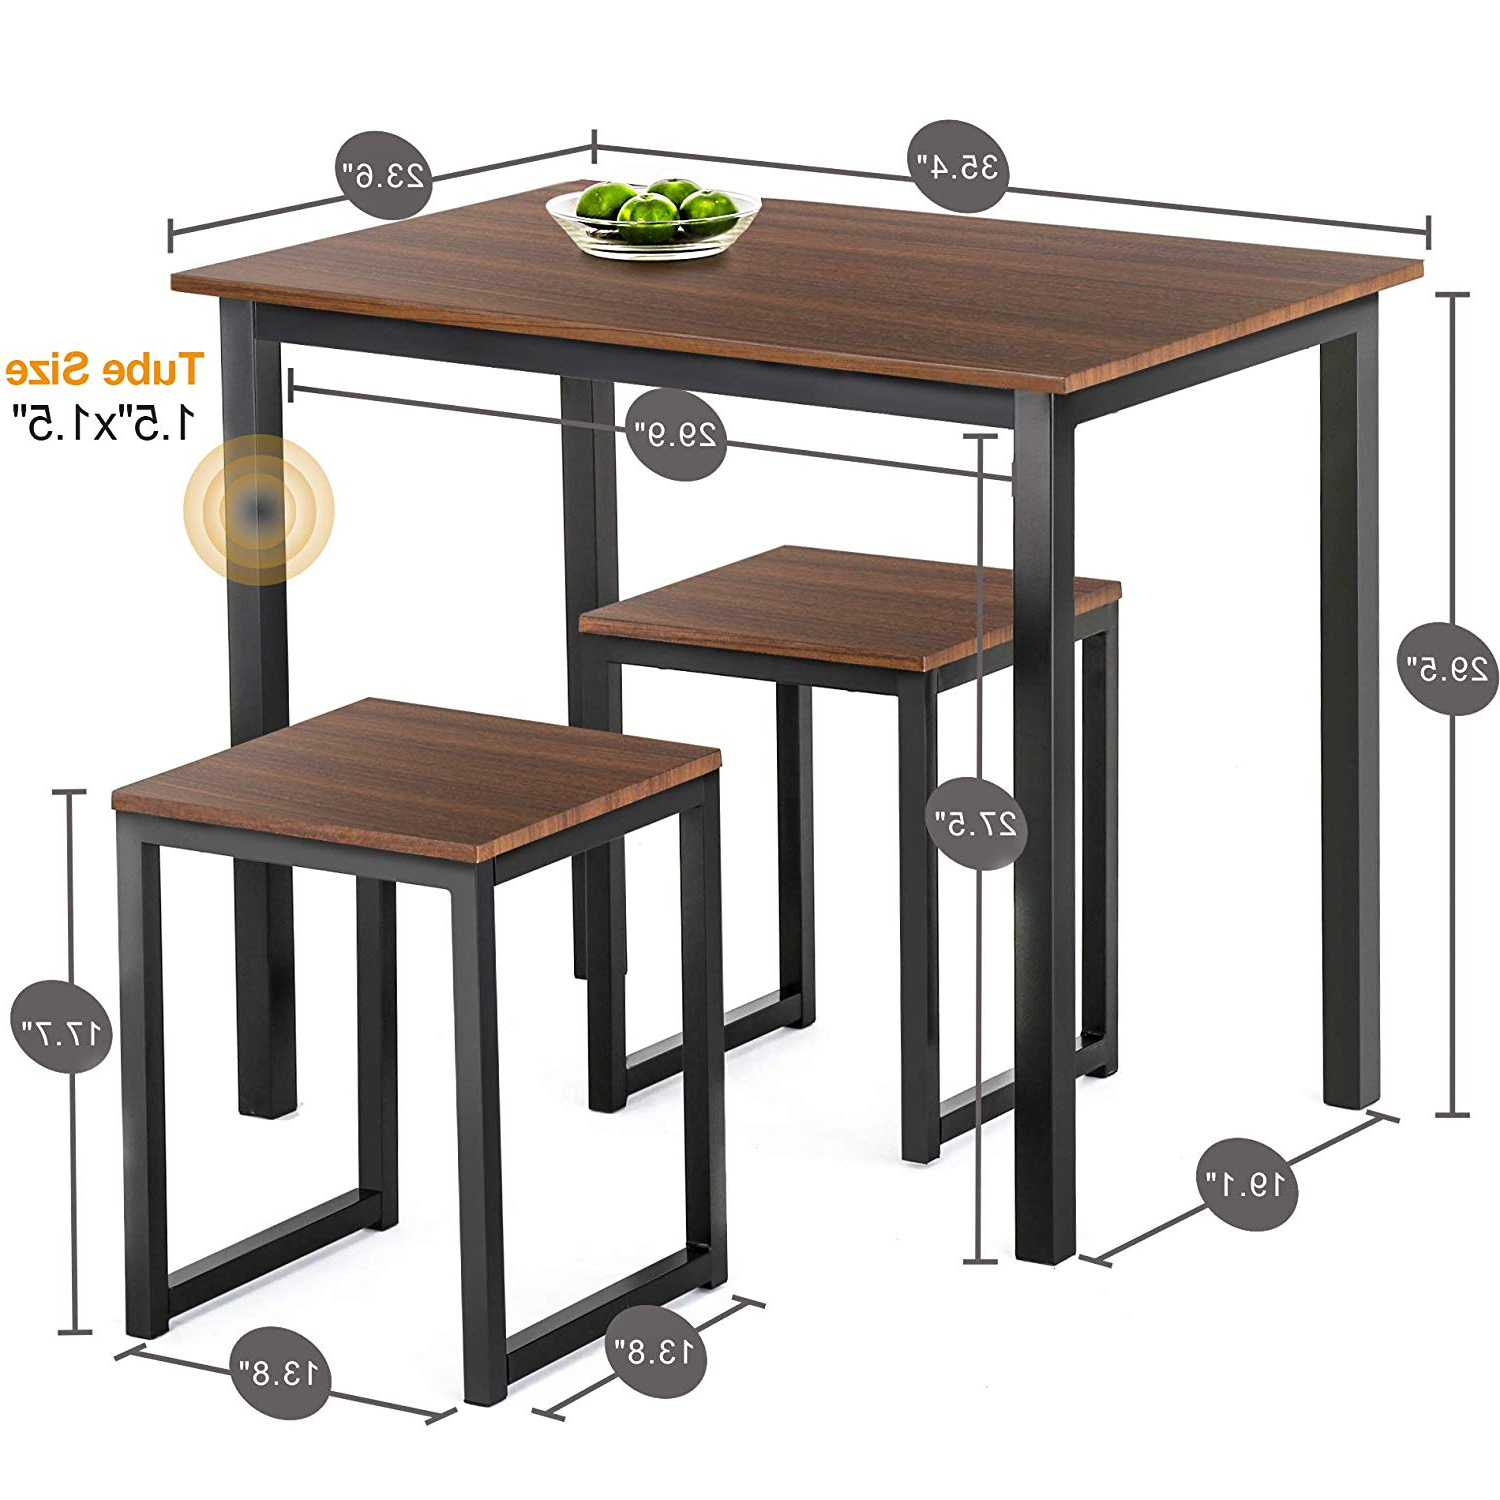 Homury Modern Wood 3 Piece Dining Set Studio Collection Soho Dining Table  With Two Stools Home Kitchen Breakfast Table,brown Regarding Most Up To Date 3 Piece Dining Sets (Gallery 14 of 20)